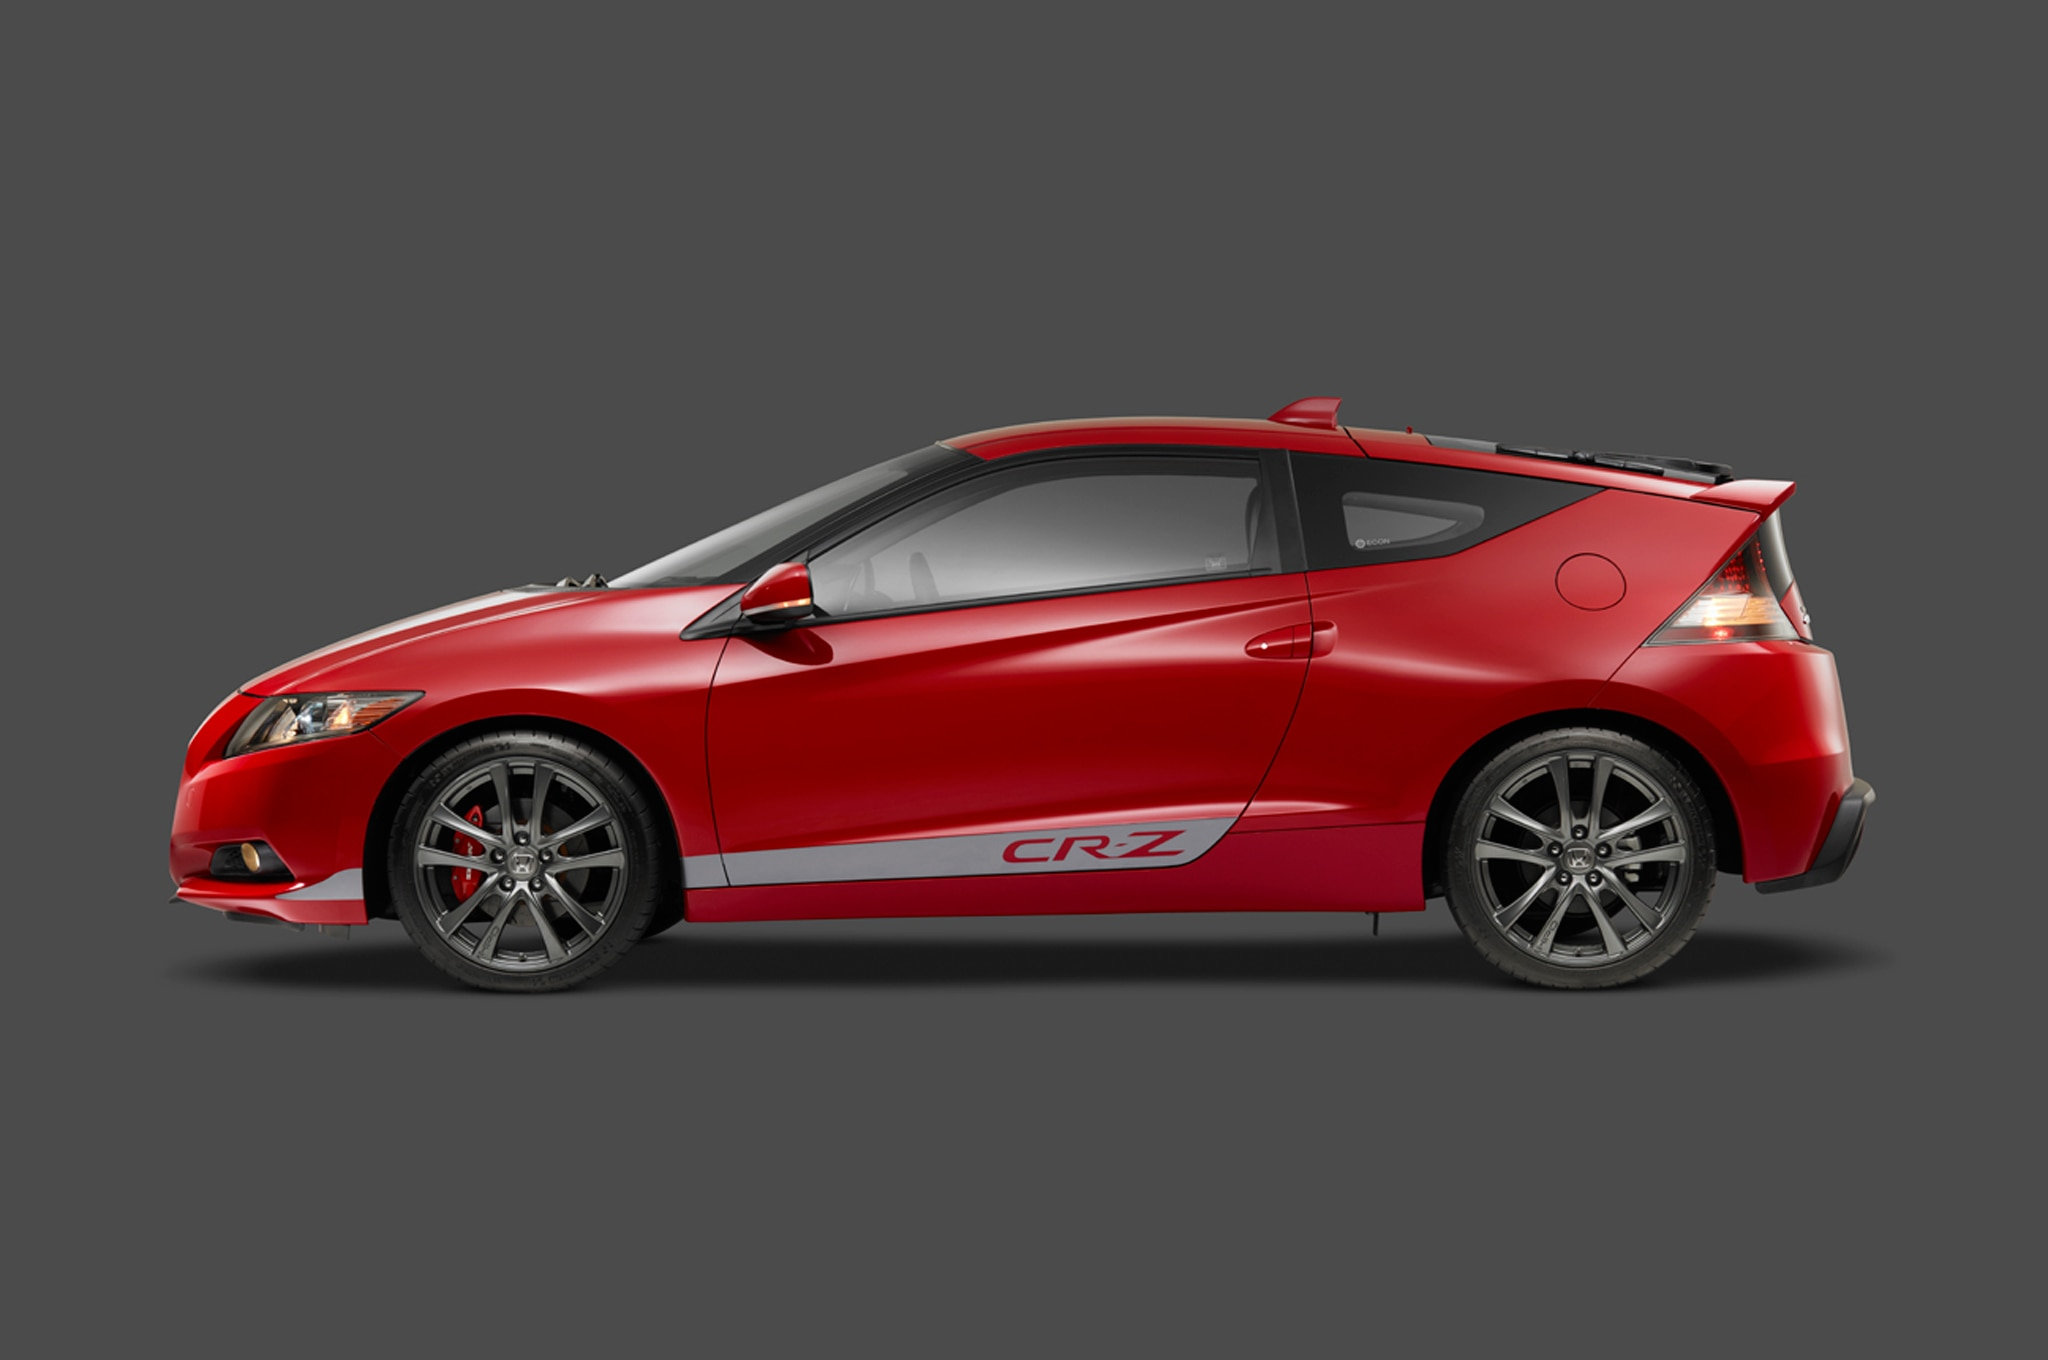 The Honda Cr Z Is Officially Dead No Successor In Sight Automobile Magazine